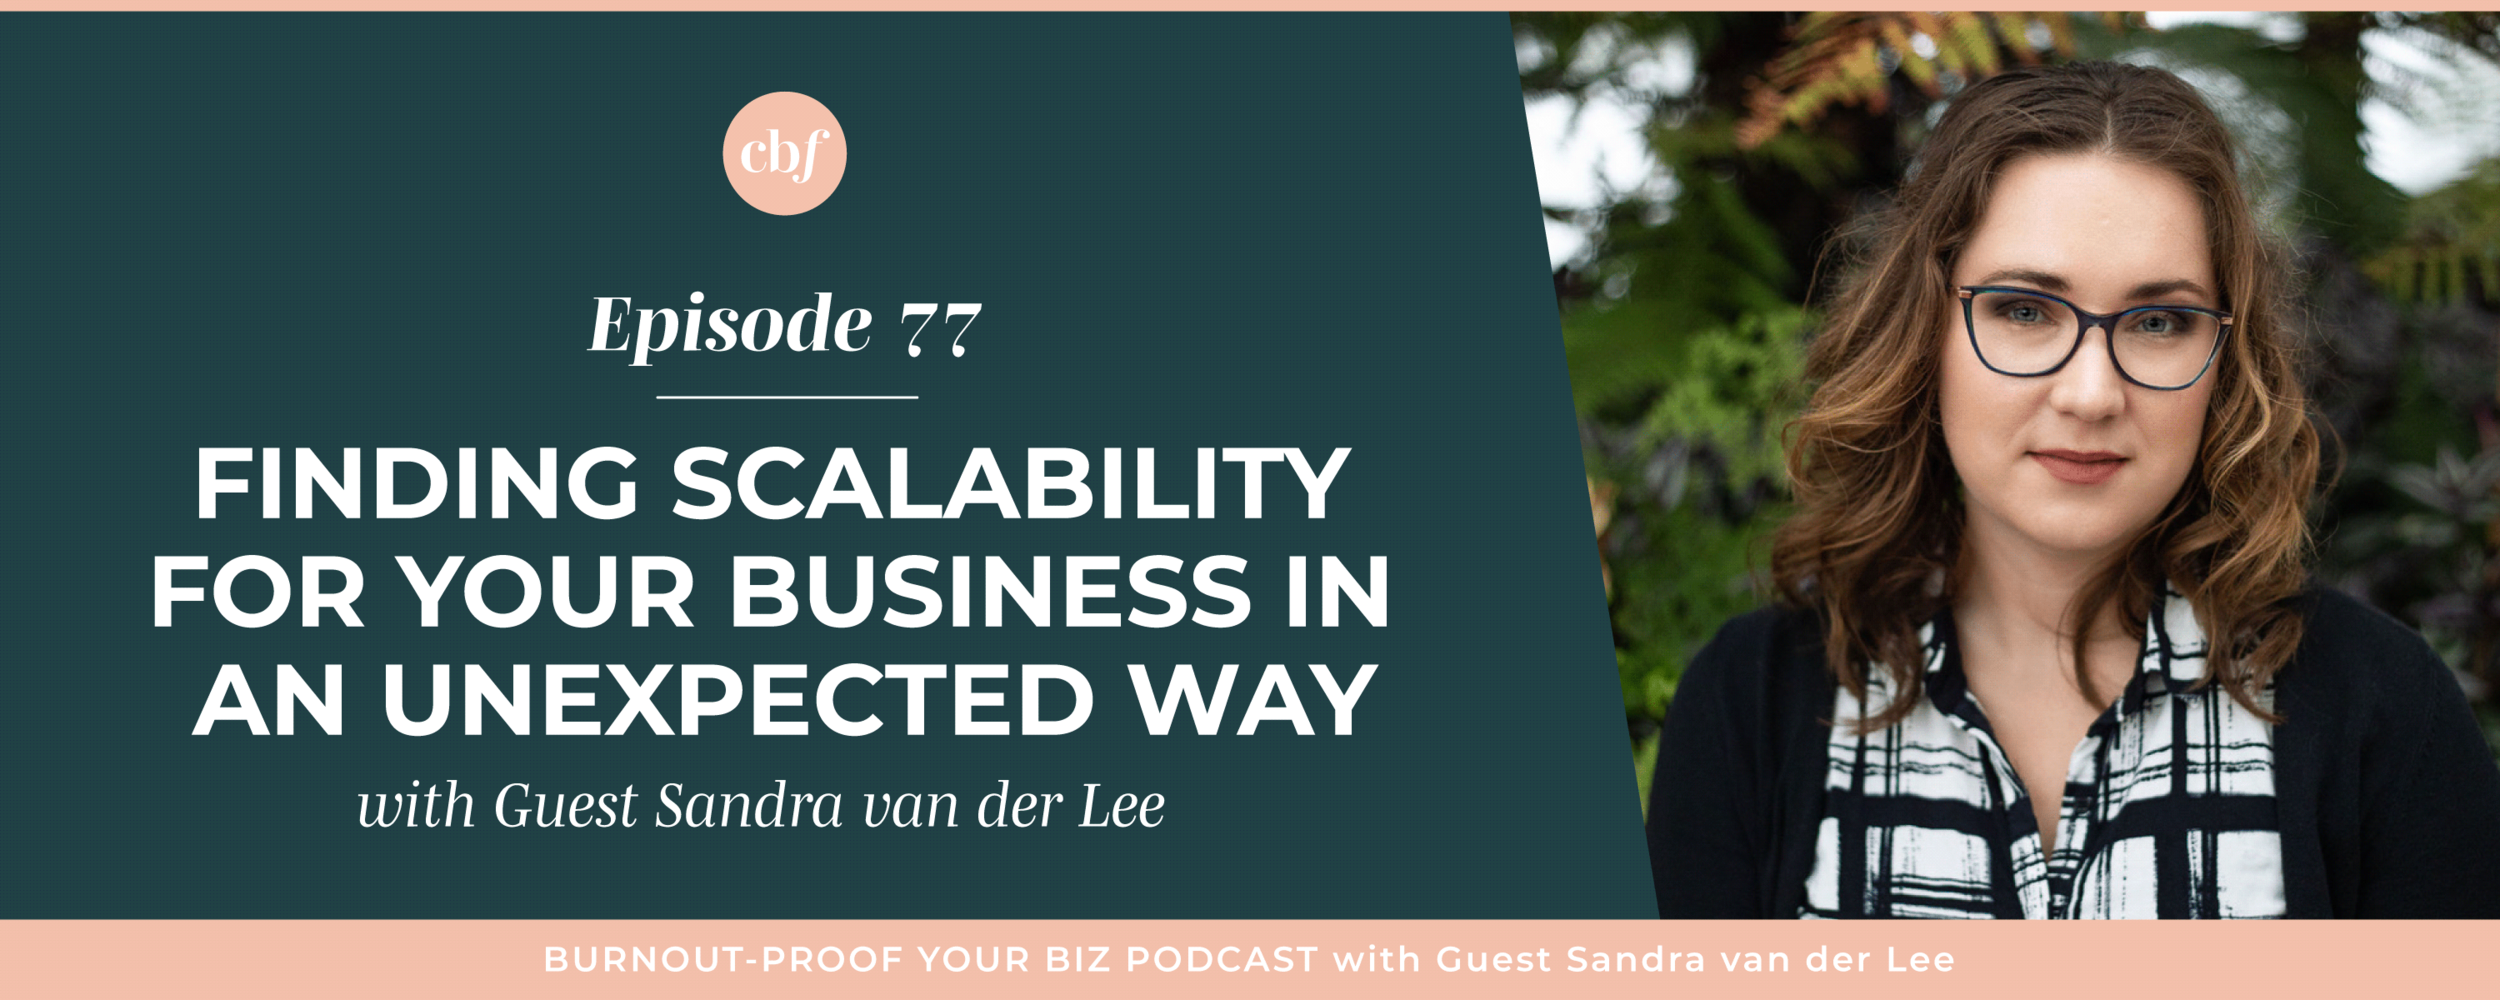 Burnout-Proof Your Biz Podcast with Chelsea B Foster | Episode 077 - Finding Scalability for Your Business in an Unexpected Way with Sandra Van Der Lee - Finding happiness throughout your day by taking breaks, long lunches, watching Netflix, going for a walk, etc.  ||  Burnout-Proof Your Business Podcast | Workflow & Productivity Specialist | Eliminate, Automate, Delegate | Future Planning for Your Business | Executing to Better Your Business | Finding Happiness as an Entrepreneur | Investing in Your Business | Planning For Your Future as an Entrepreneur | Sandra Van Der Lee  it doesn't make sense to work more hours, because it's not going to get you more results, executing in your business, strategic planning for your business, scaling your business the smart way, how to scale your business as a solopreneur, building a team, planning for your future as an entrepreneur, systems and workflows for running a successful business, learning to eliminate stress as an entrepreneur, automating systems to better your life and business, delegating as an entrepreneur, preventing burnout in your biz, honoring yourself, business tips for multi-passionate creatives, chelsea b foster, women who podcast, female podcaster, doing the work, mindfulness